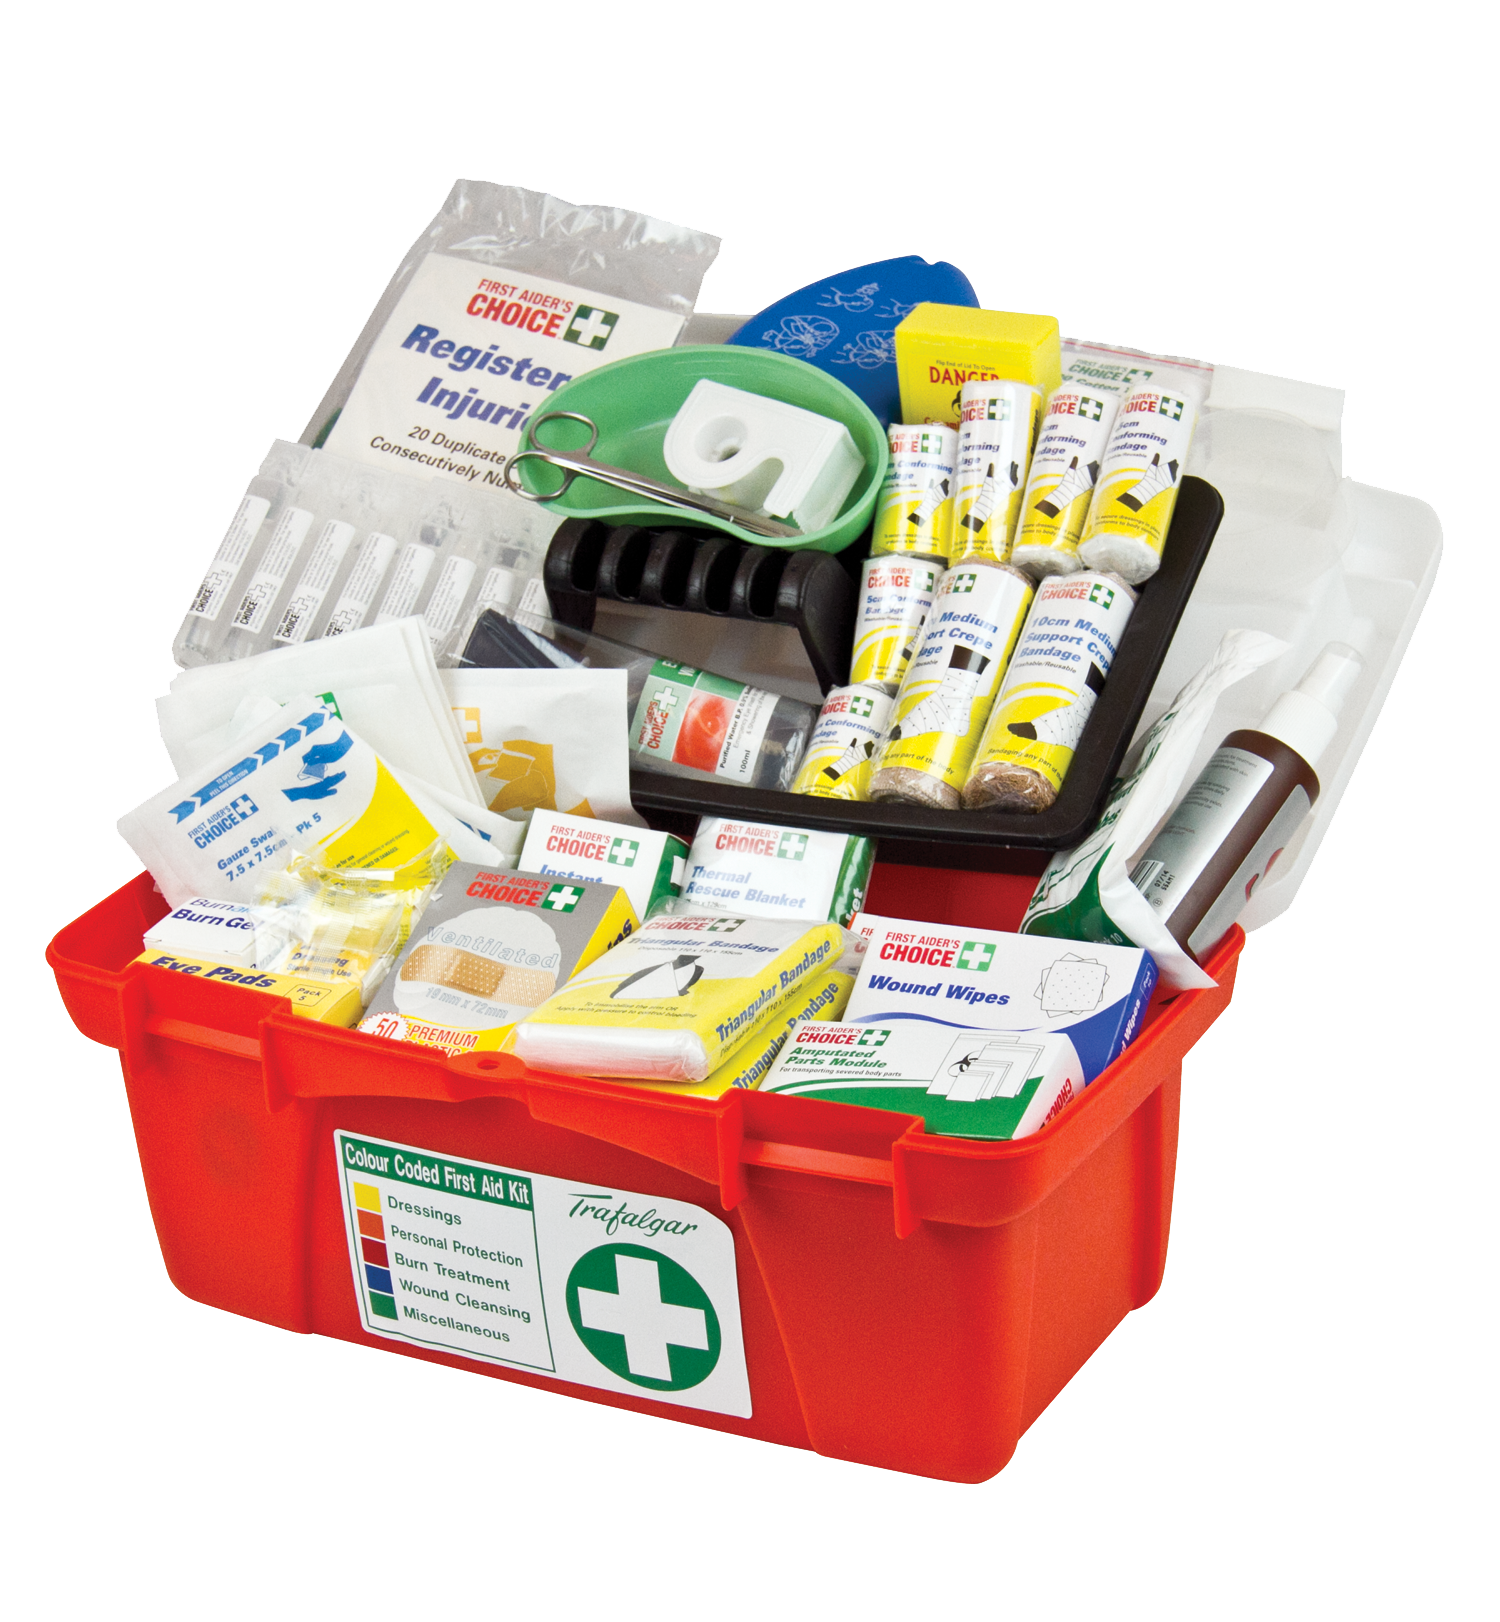 Medicines in First Aid Box PNG Image